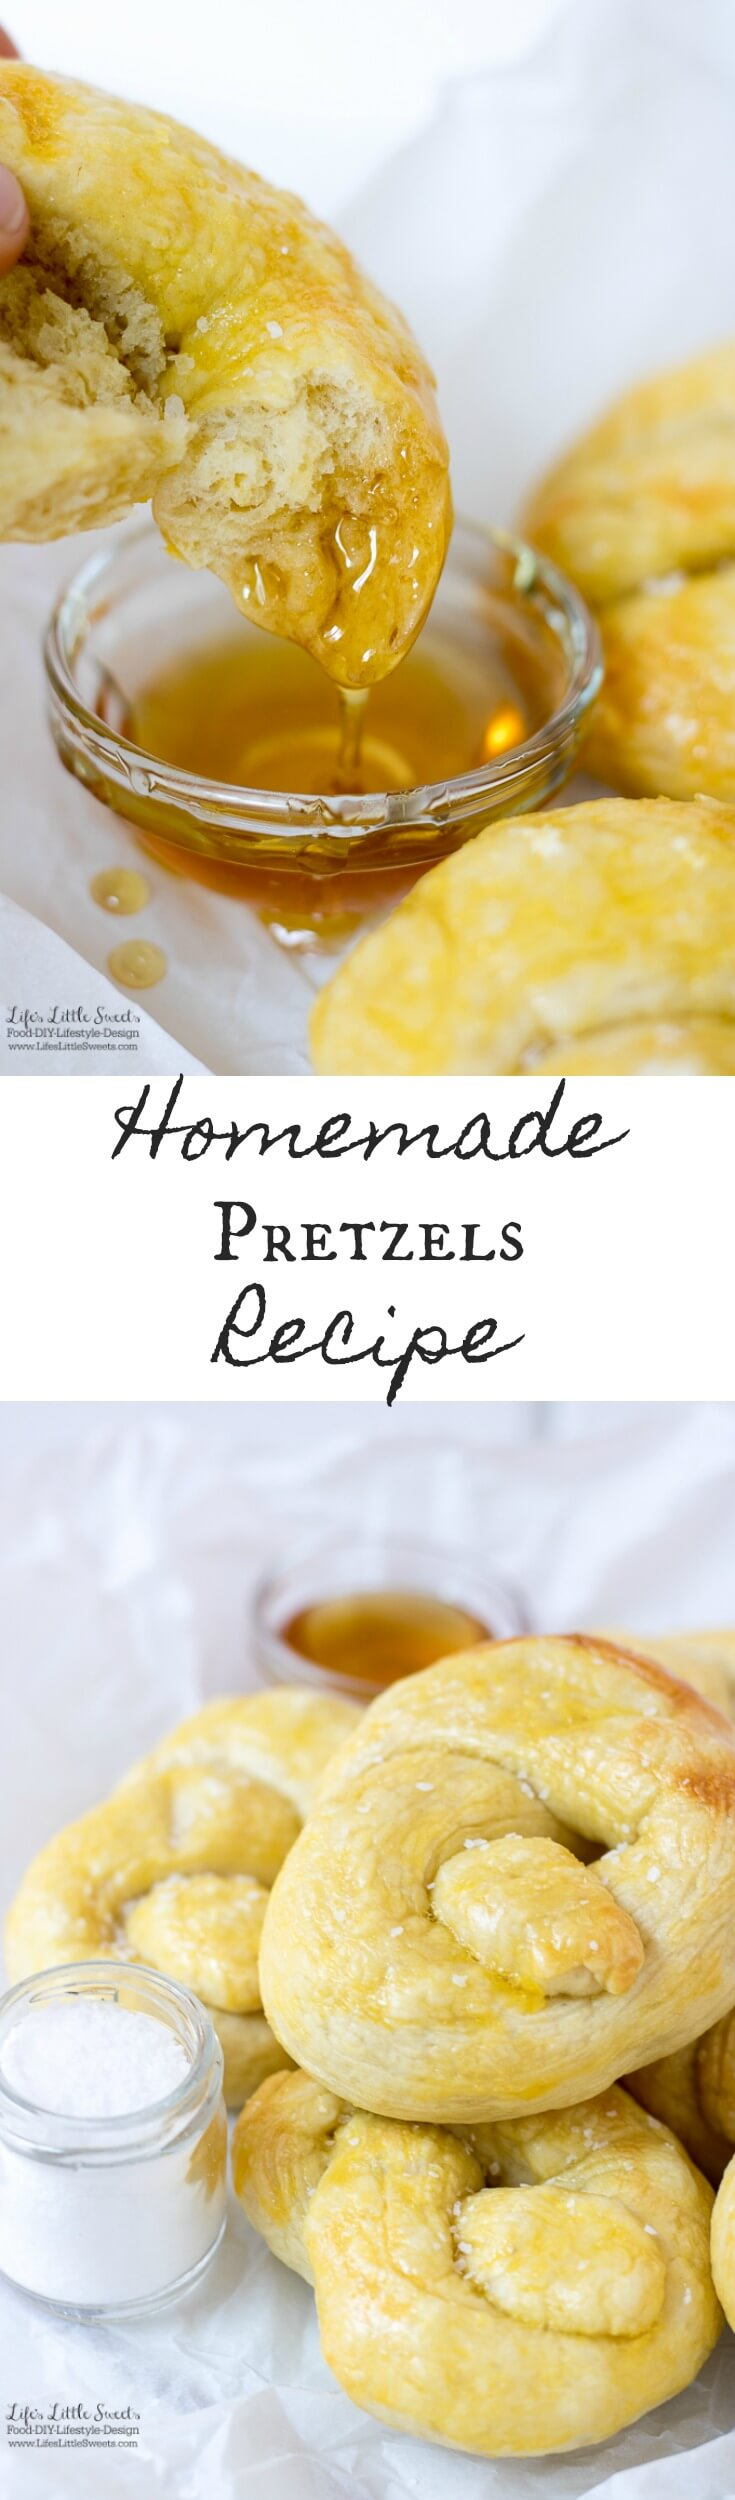 This Pretzels Recipe is delicious, yielding large, soft pretzels that go great dipped in wildflower honey or a mustard sauce. (makes 16 pretzels)